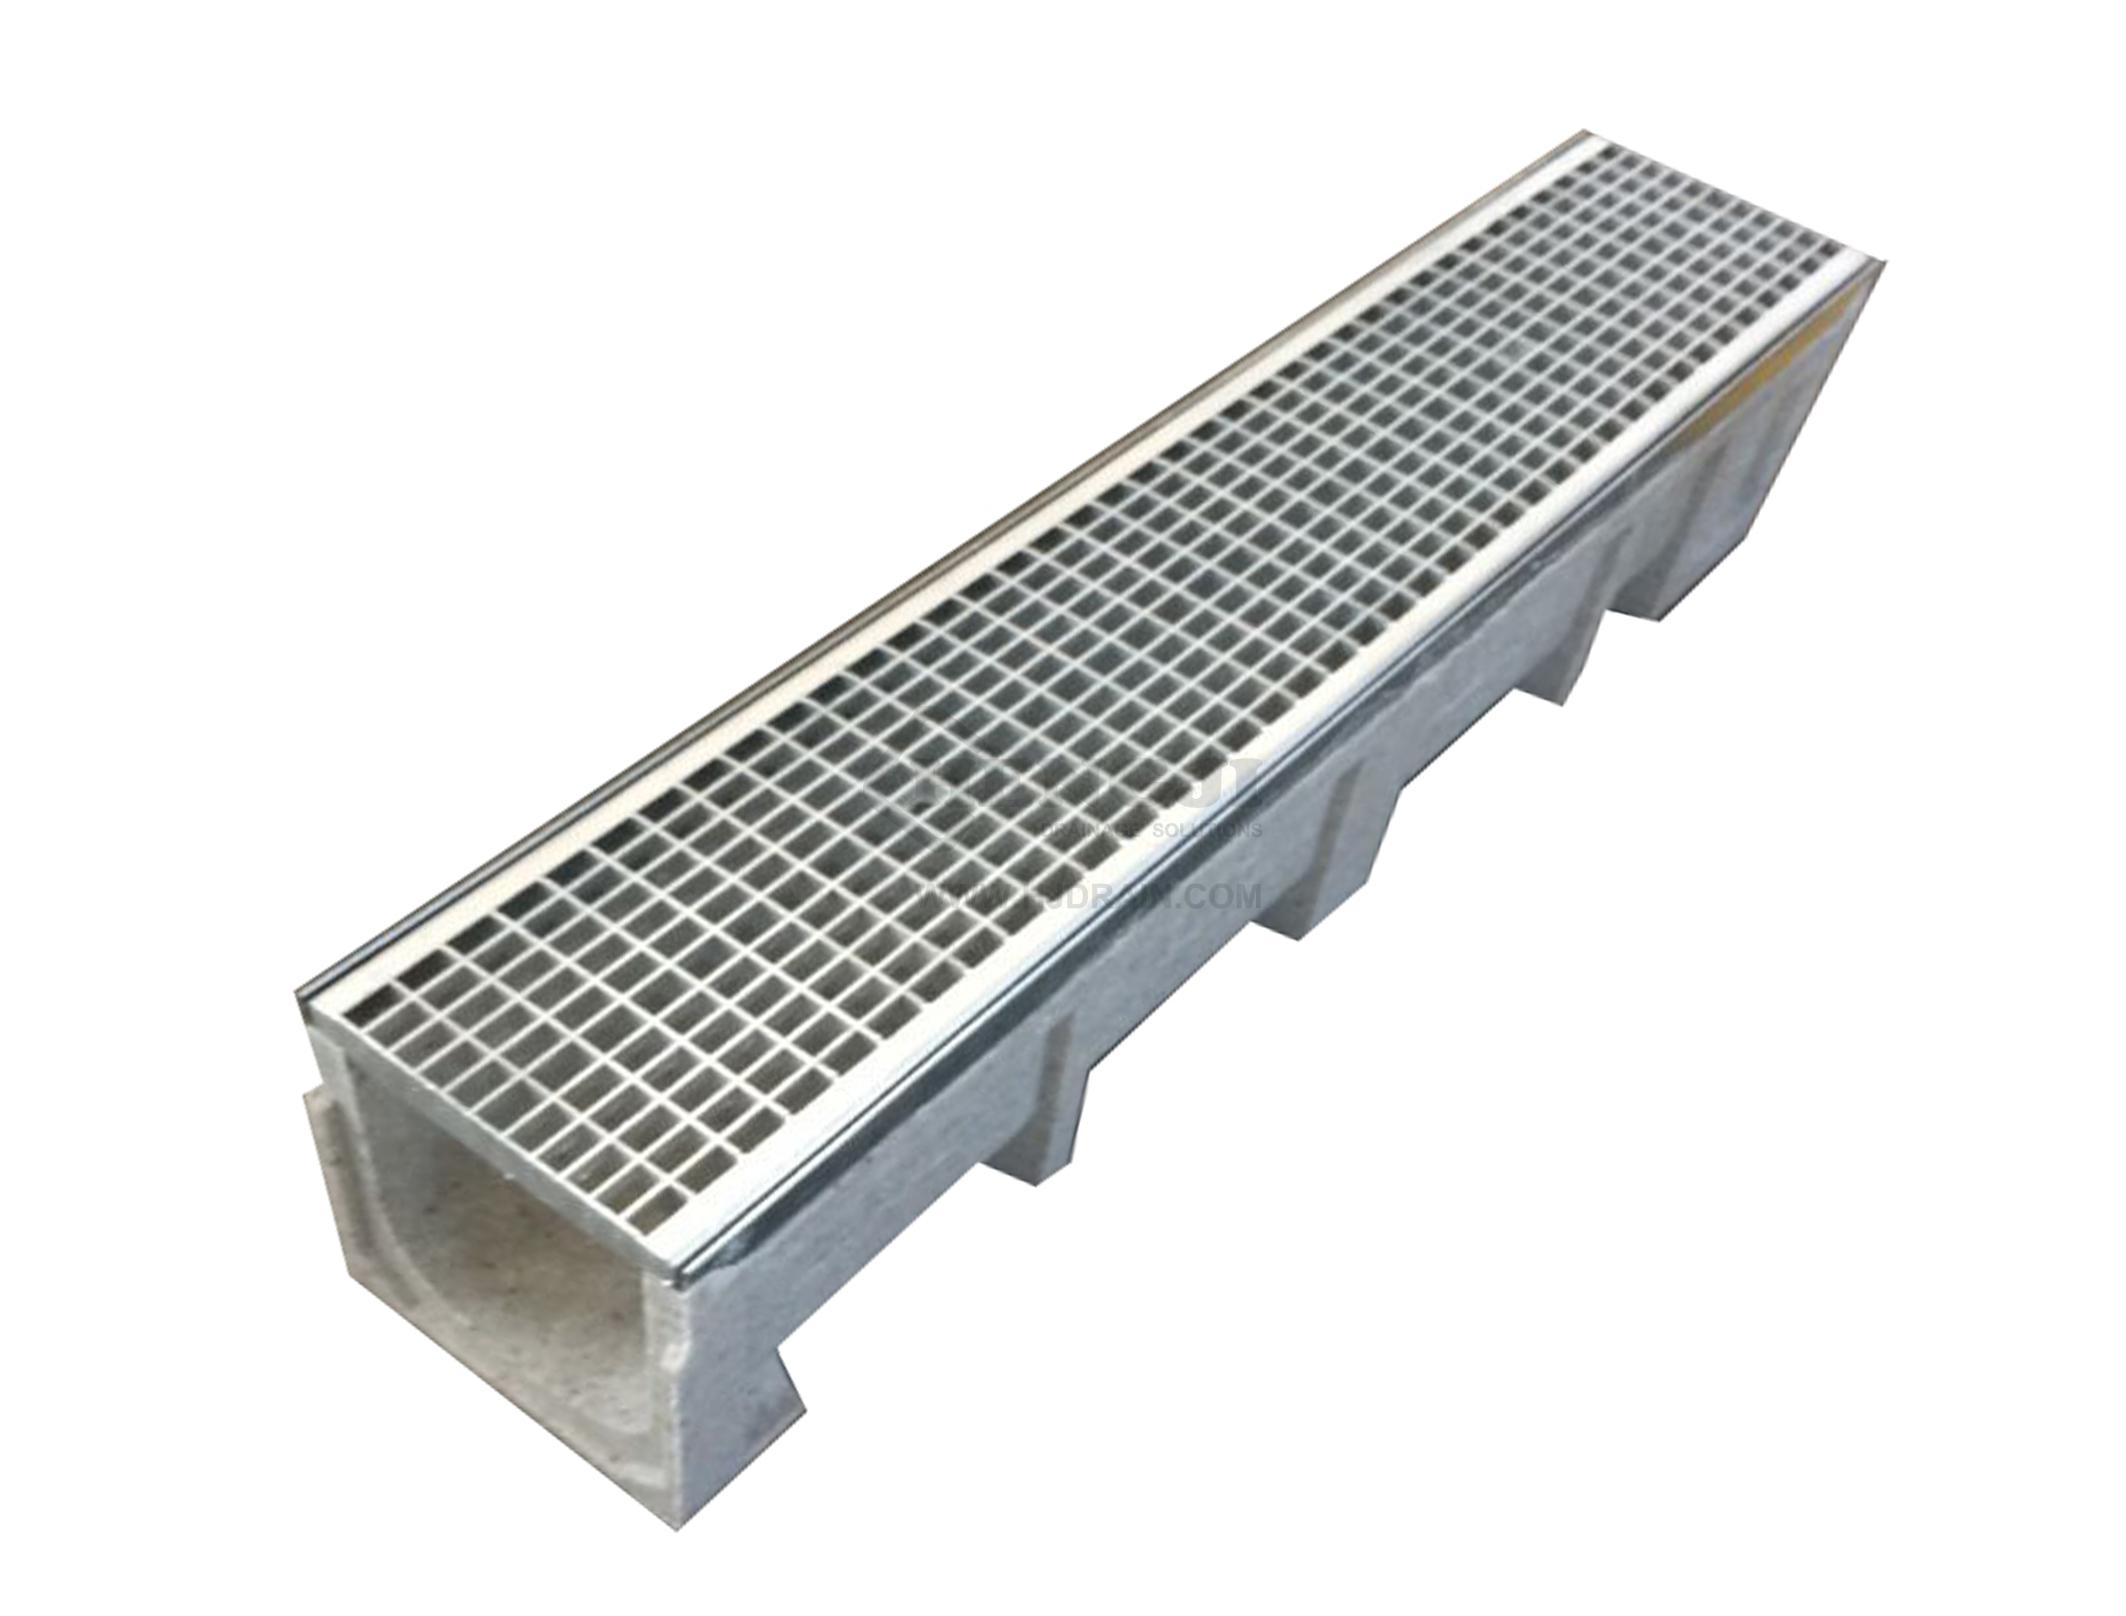 Trench Drain Se150 Z01 With Stainless Steel Grate